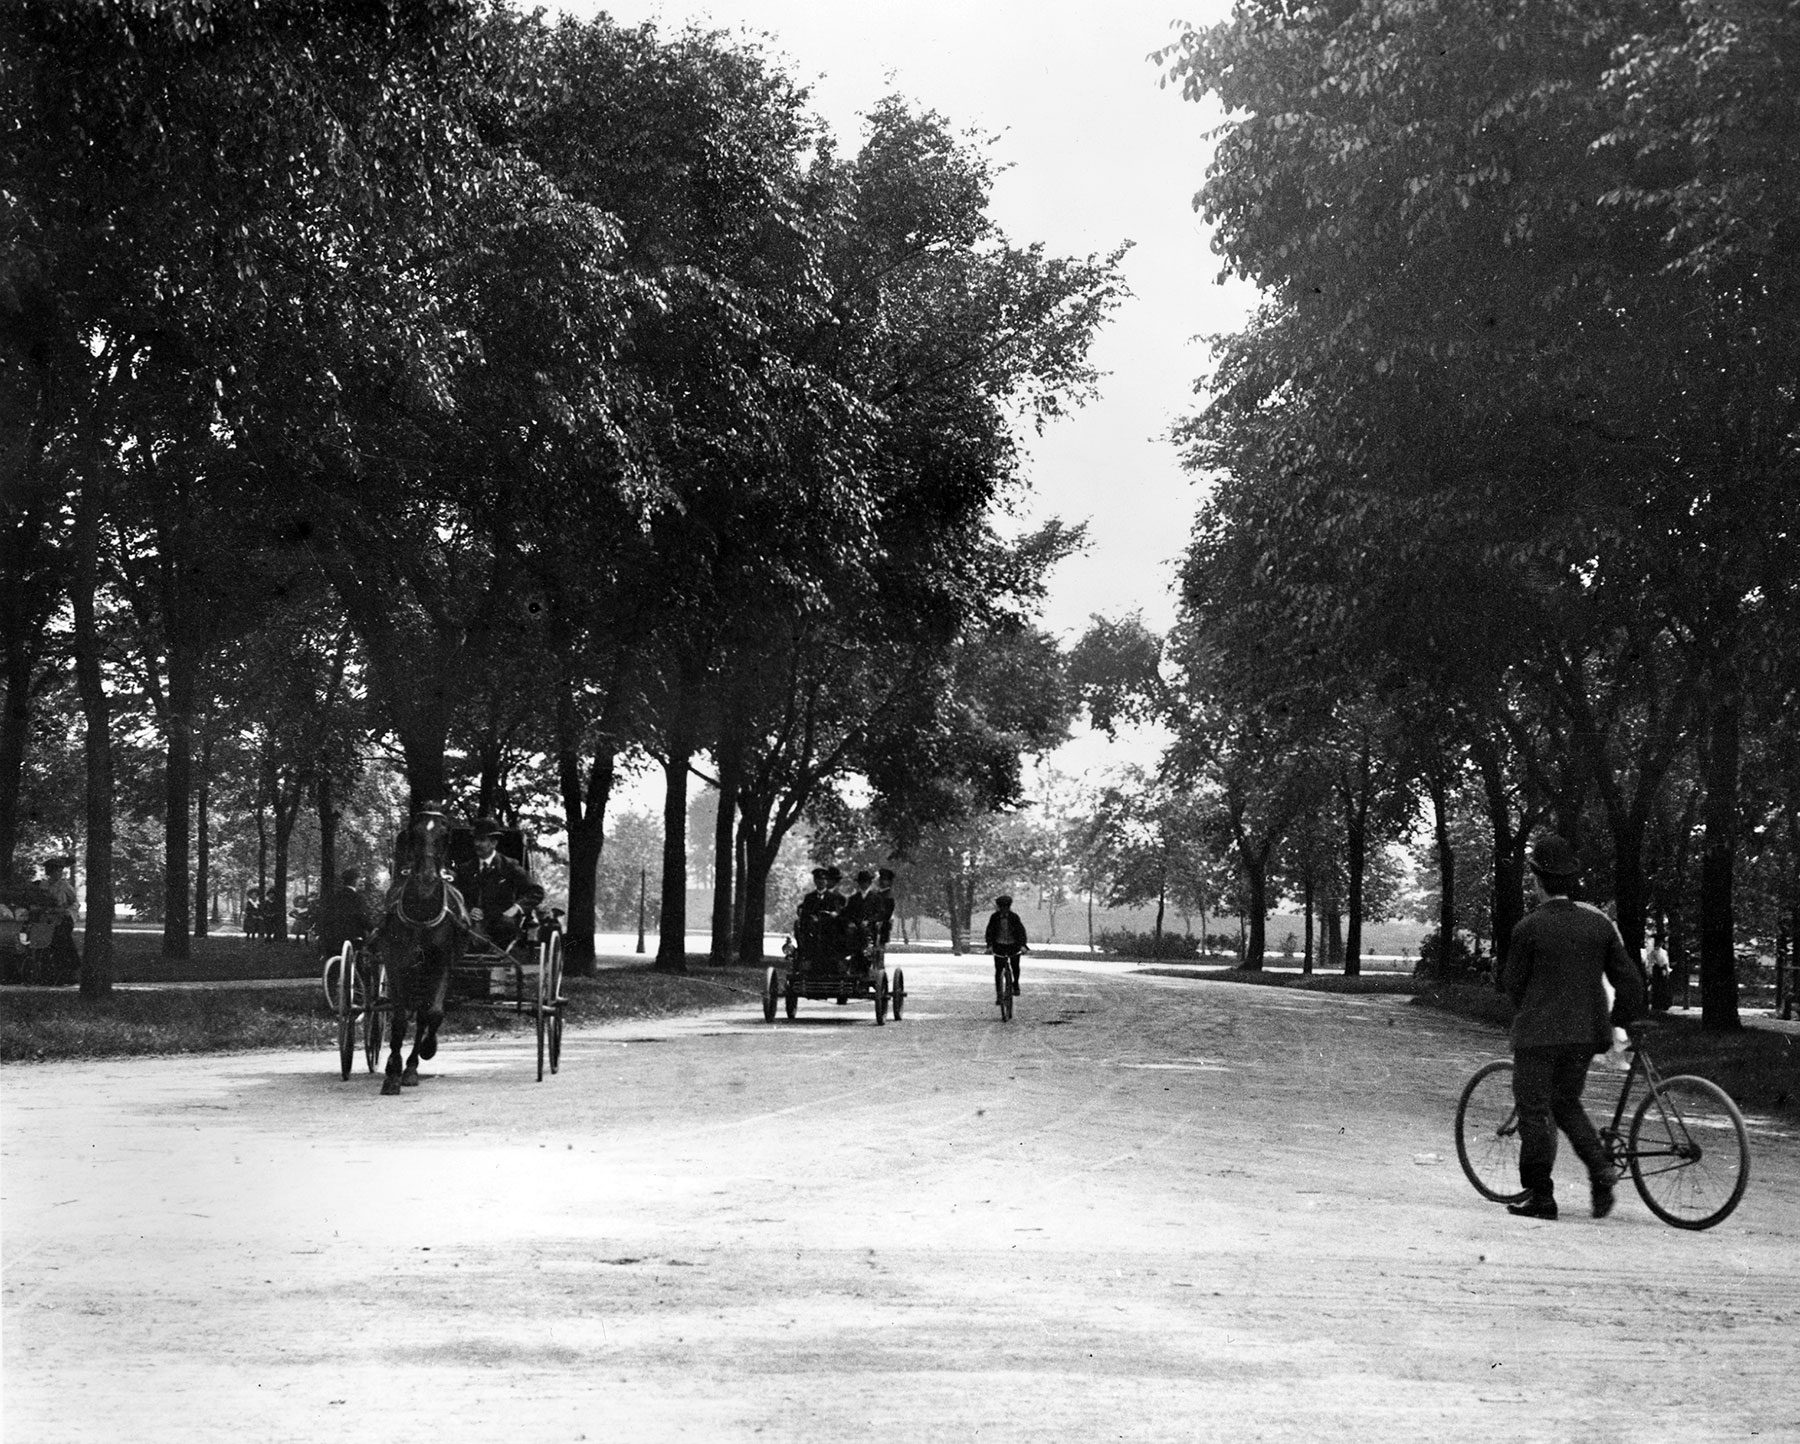 By the mid-1890s, bicycles often shared park roads with horses and carriages, as shown in this photo of Garfield Park, ca. 1895. Courtesy of Chicago History Museum iCHi-51168.